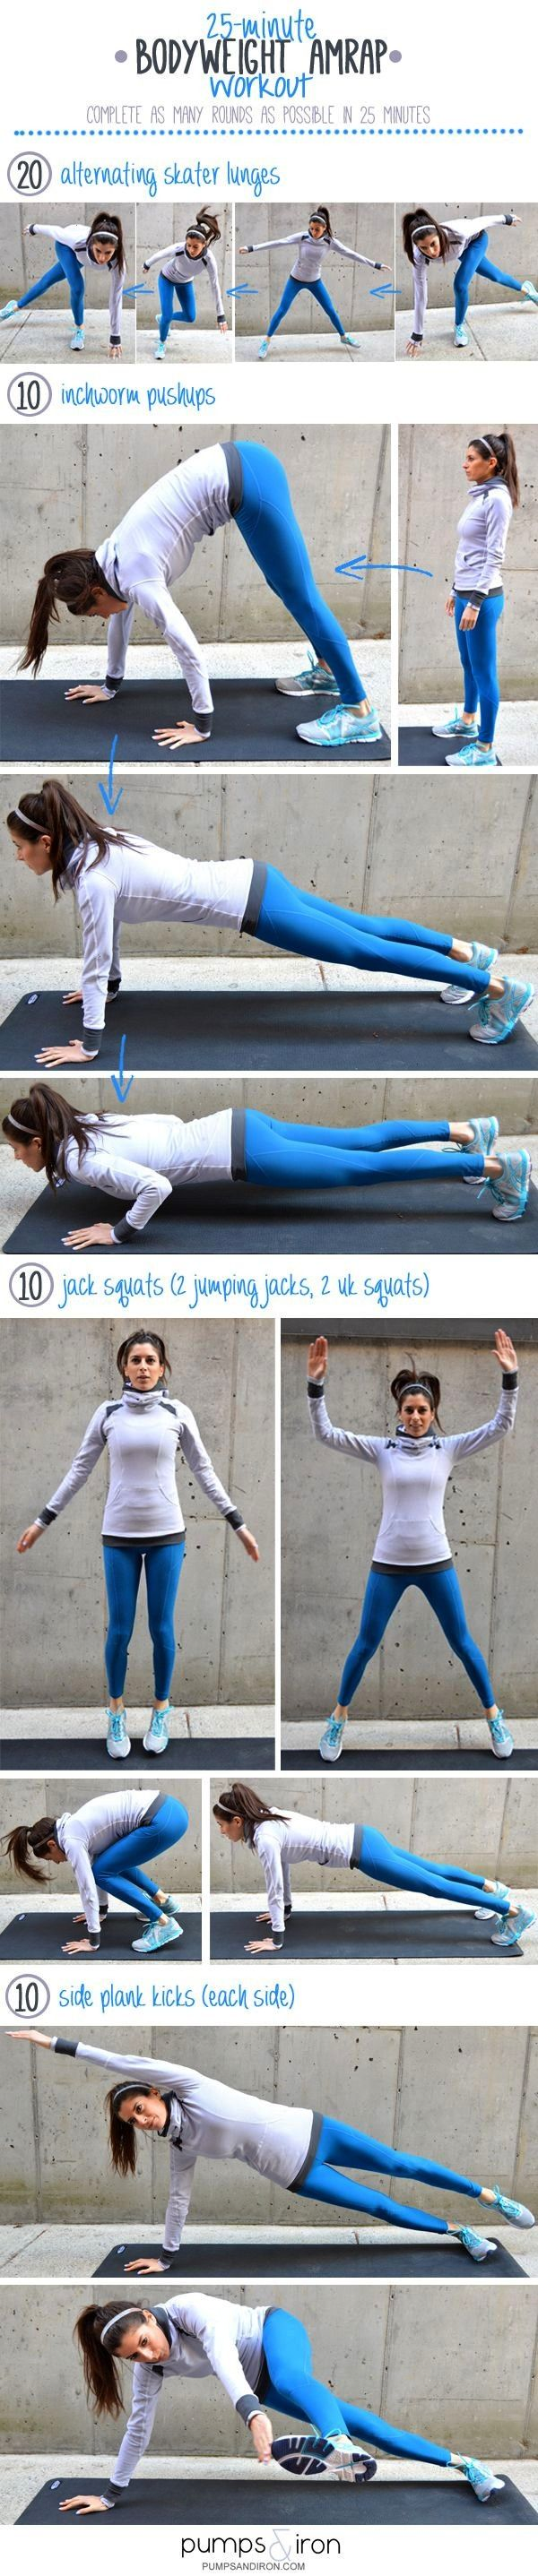 #bodyweight #transform #25minute #exercise #yourself #workout #fitness #anytime #healthy #health #ca...